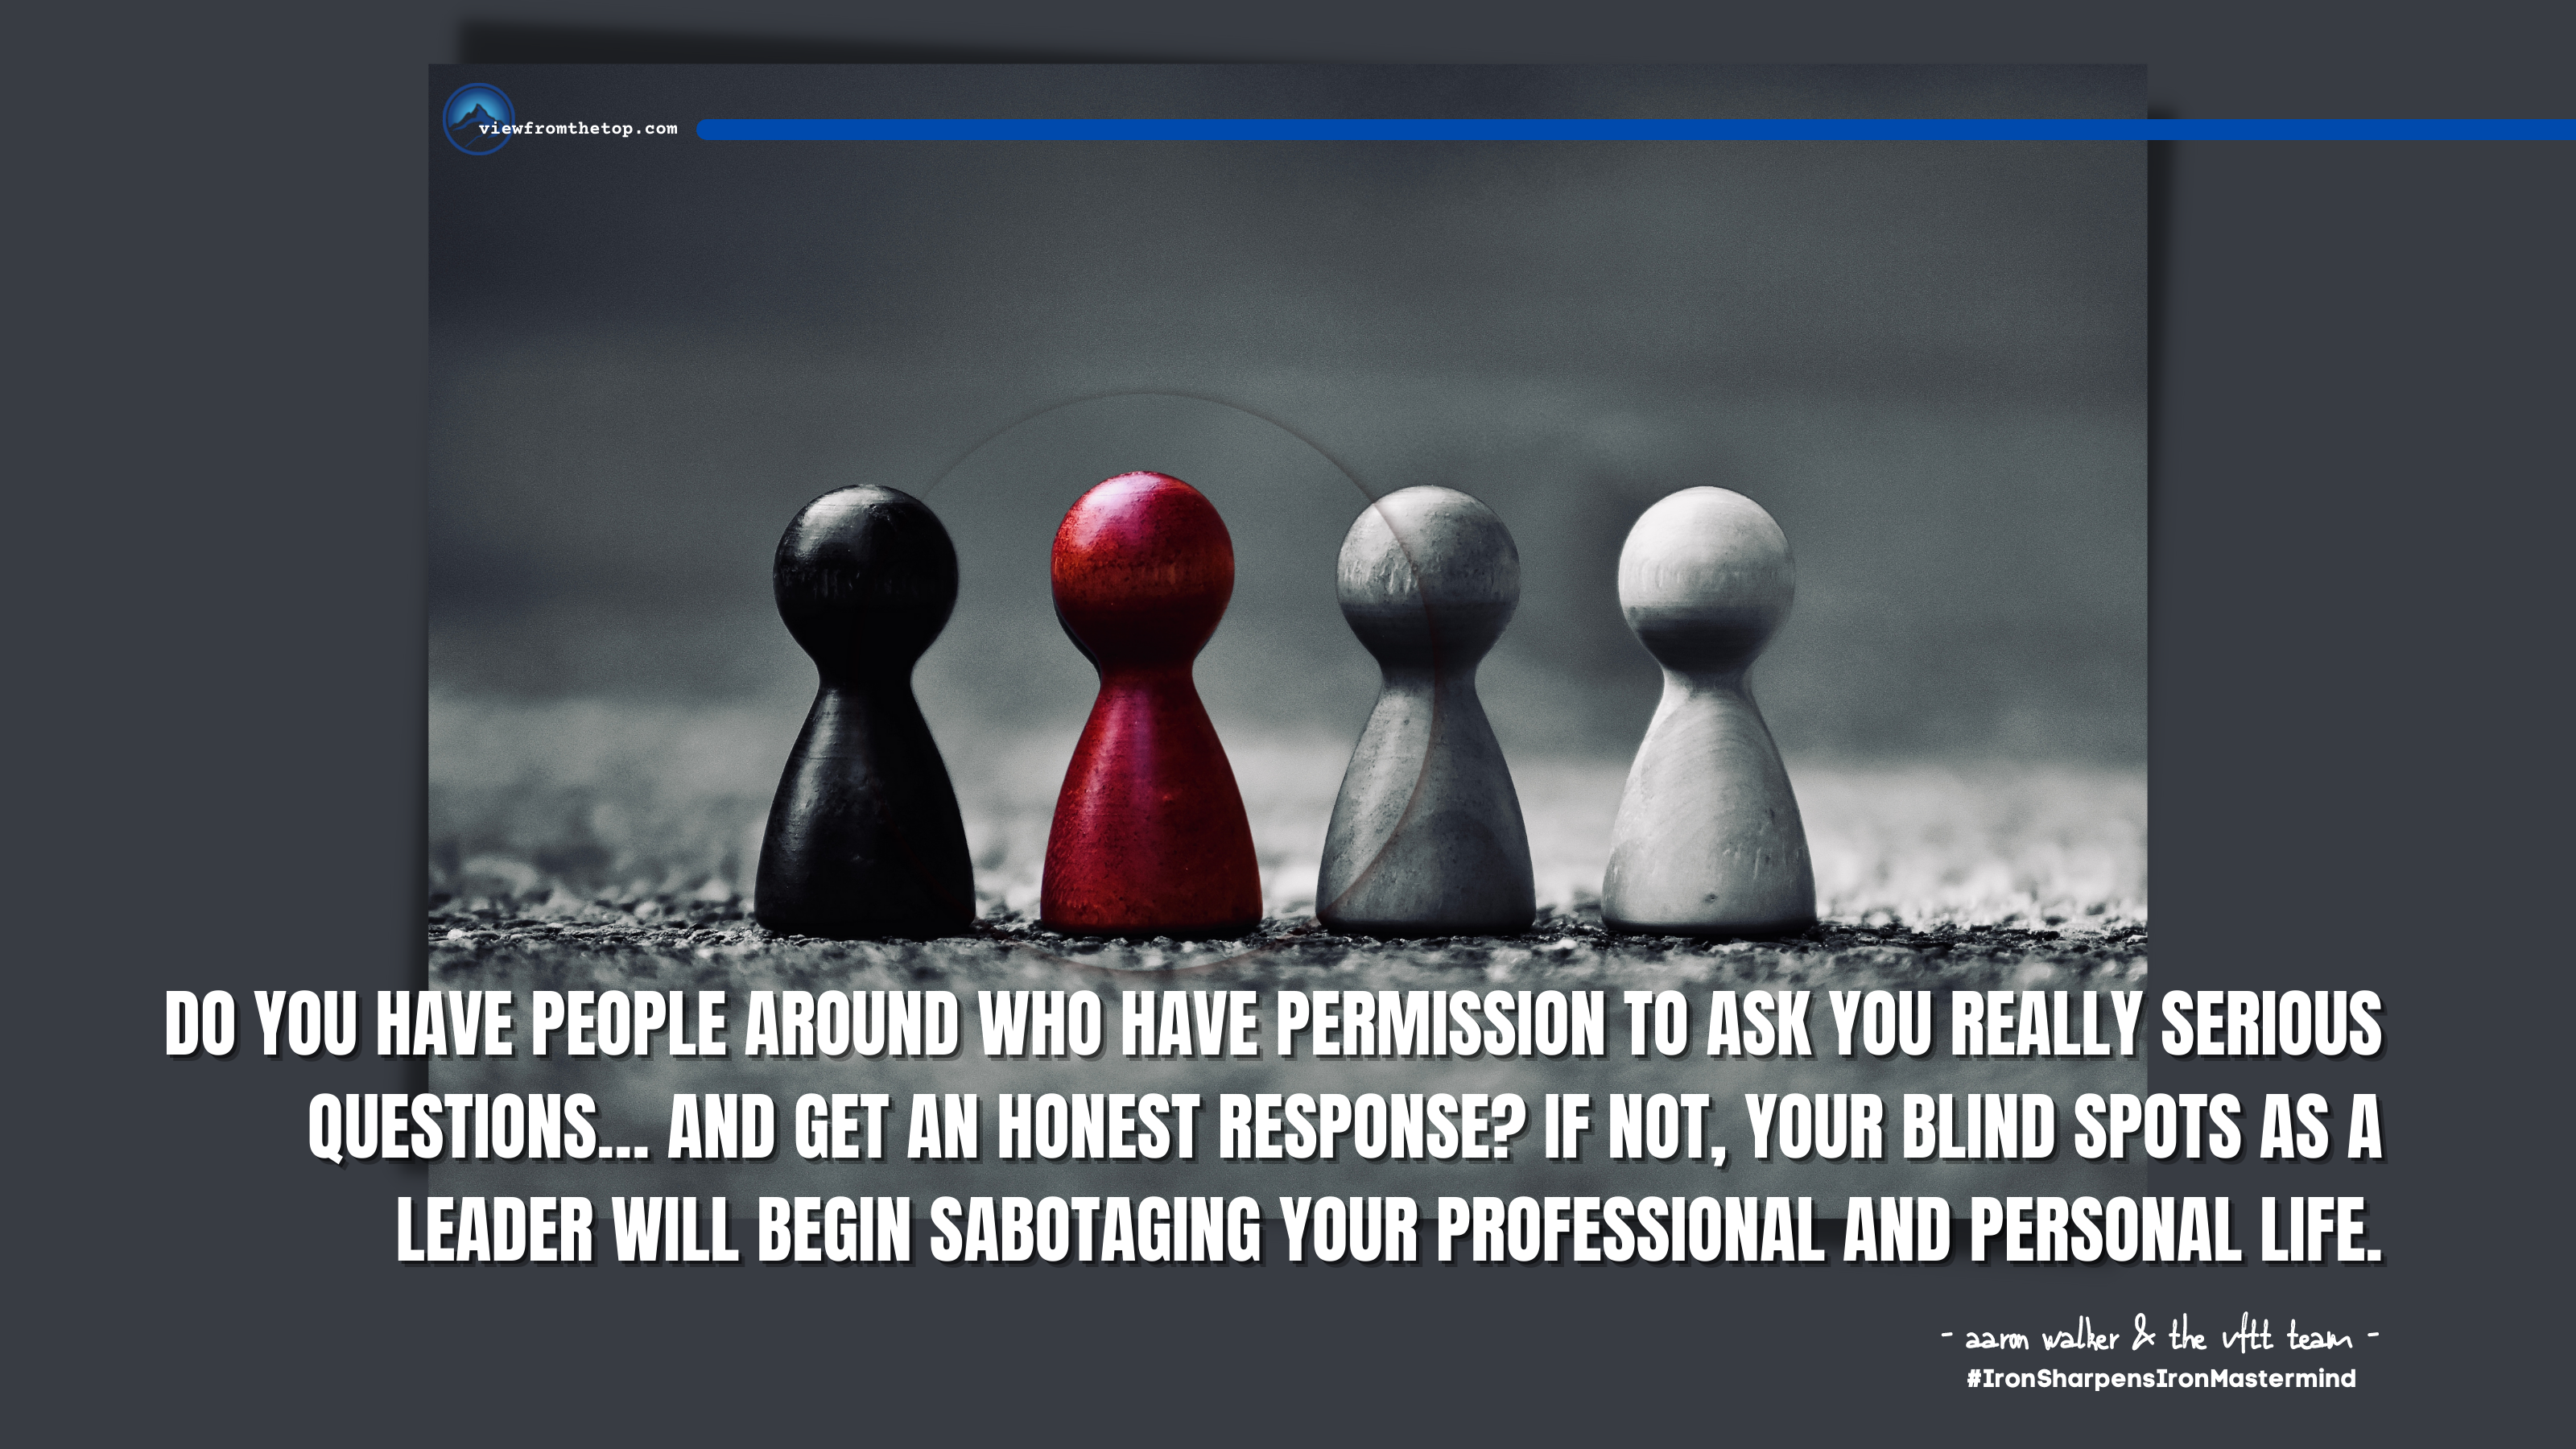 Do you have people around who have permission to ask you really serious questions… and get an honest response If not, your blind spots as a leader will begin sabotaging your professional and personal life. (1)